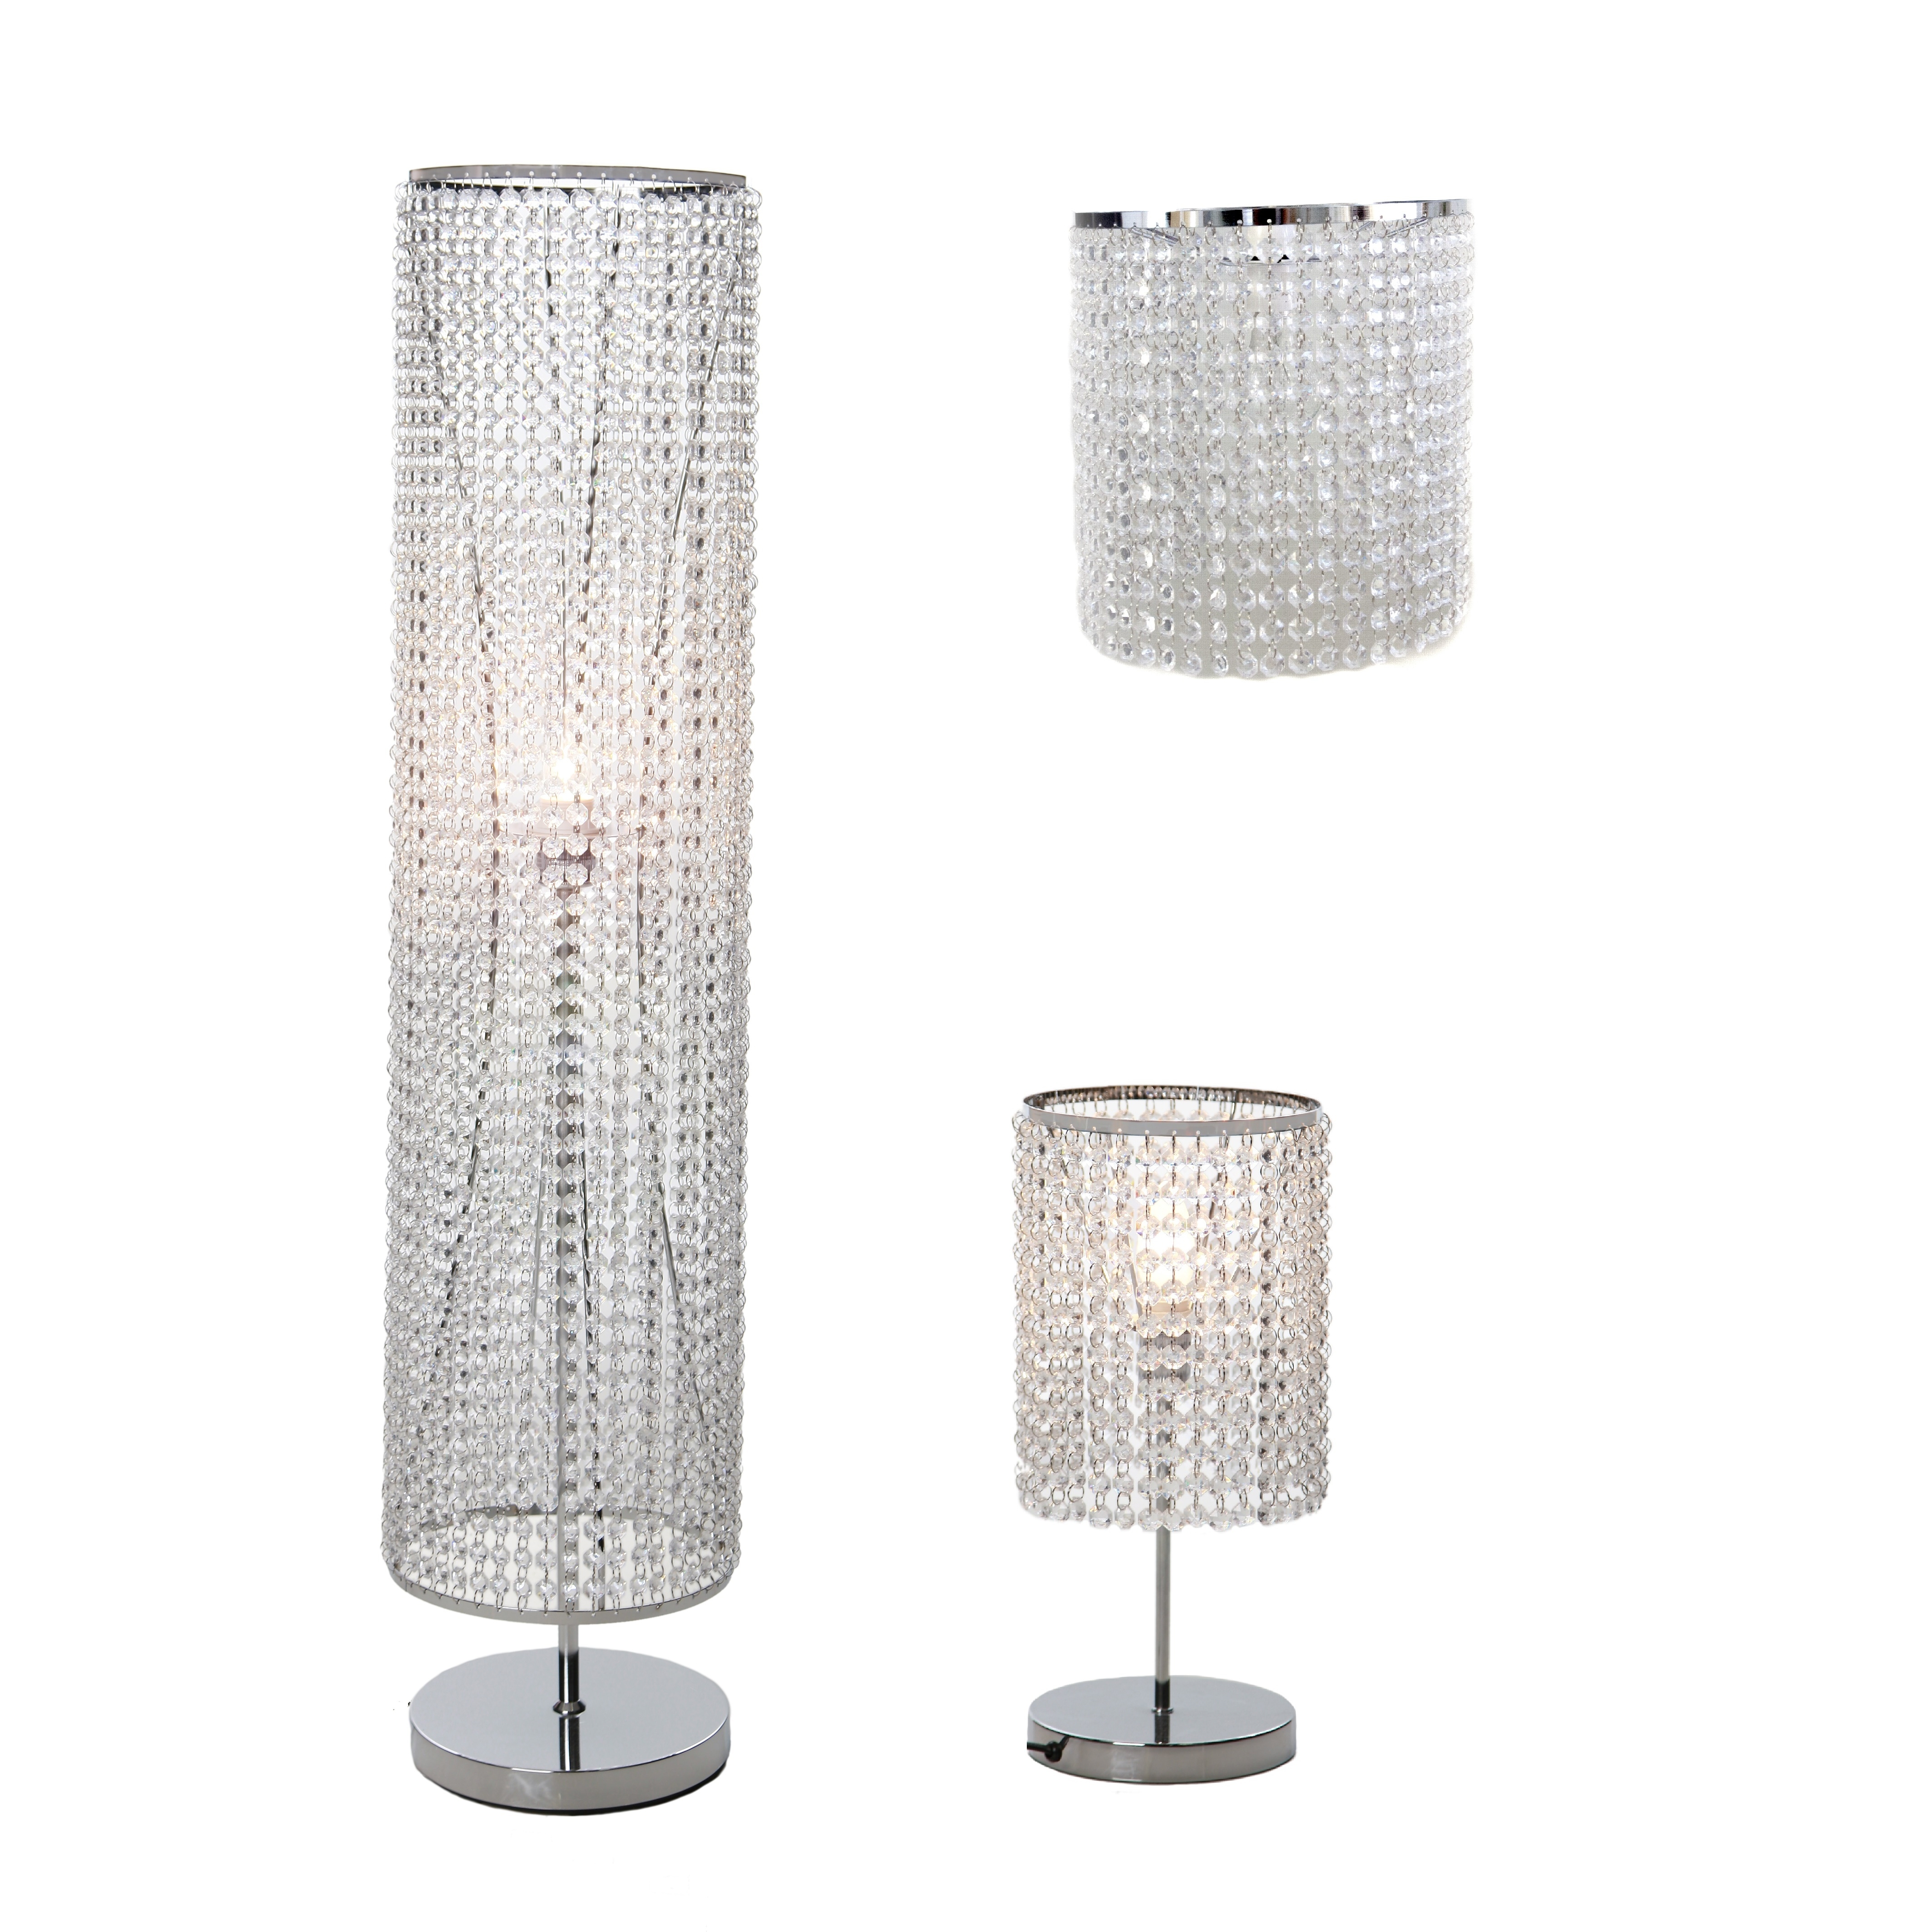 Lights Cheap Chandelier Floor Lamp Chrome Arc Lamp Crystal Throughout Chandelier Standing Lamps (View 24 of 25)